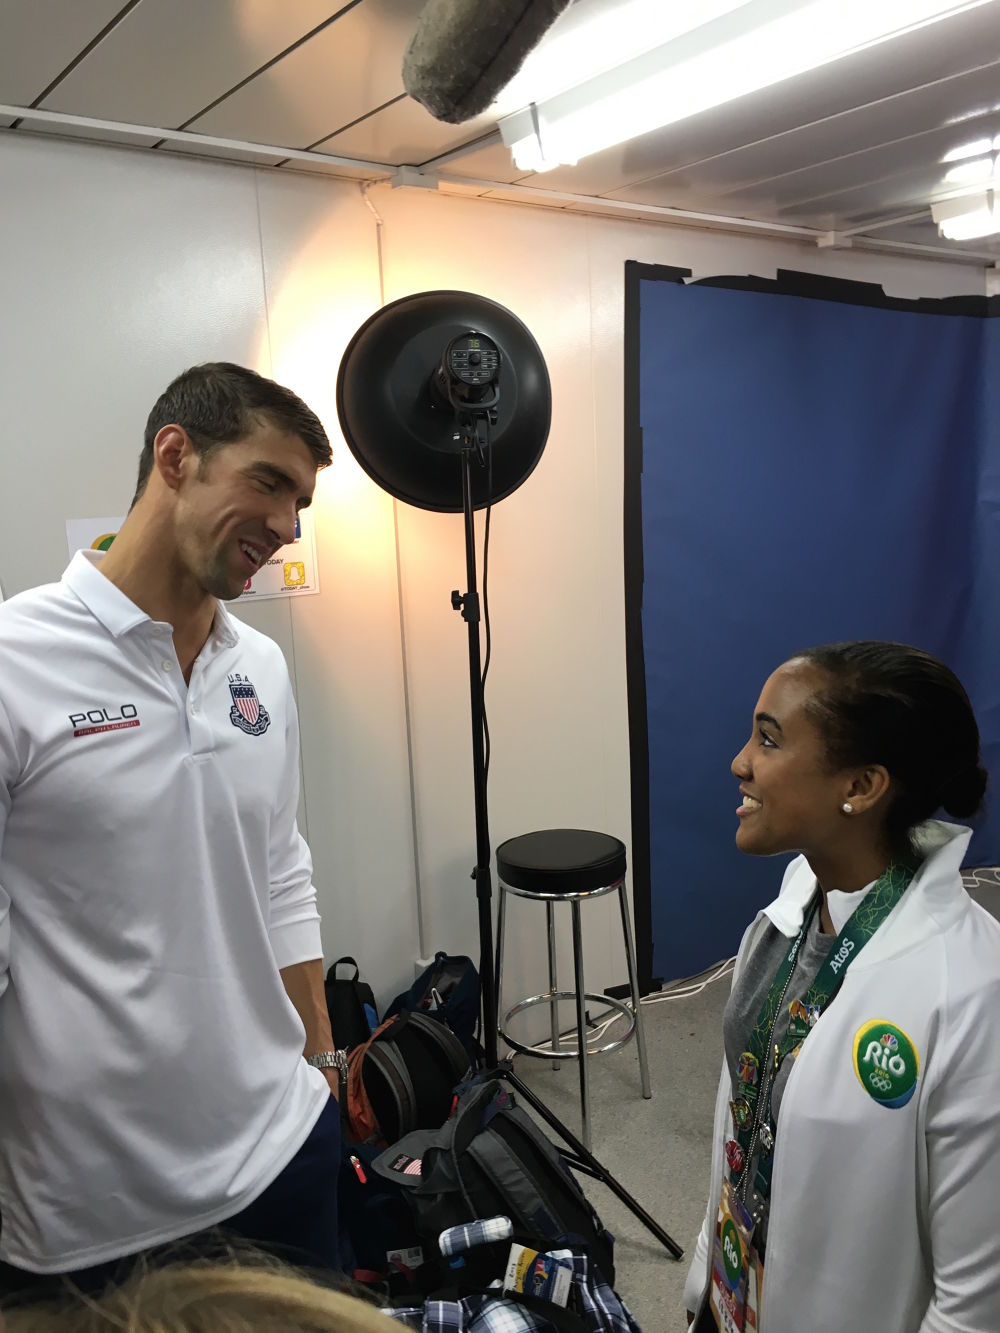 Whitney Stewart meets Michael Phelps